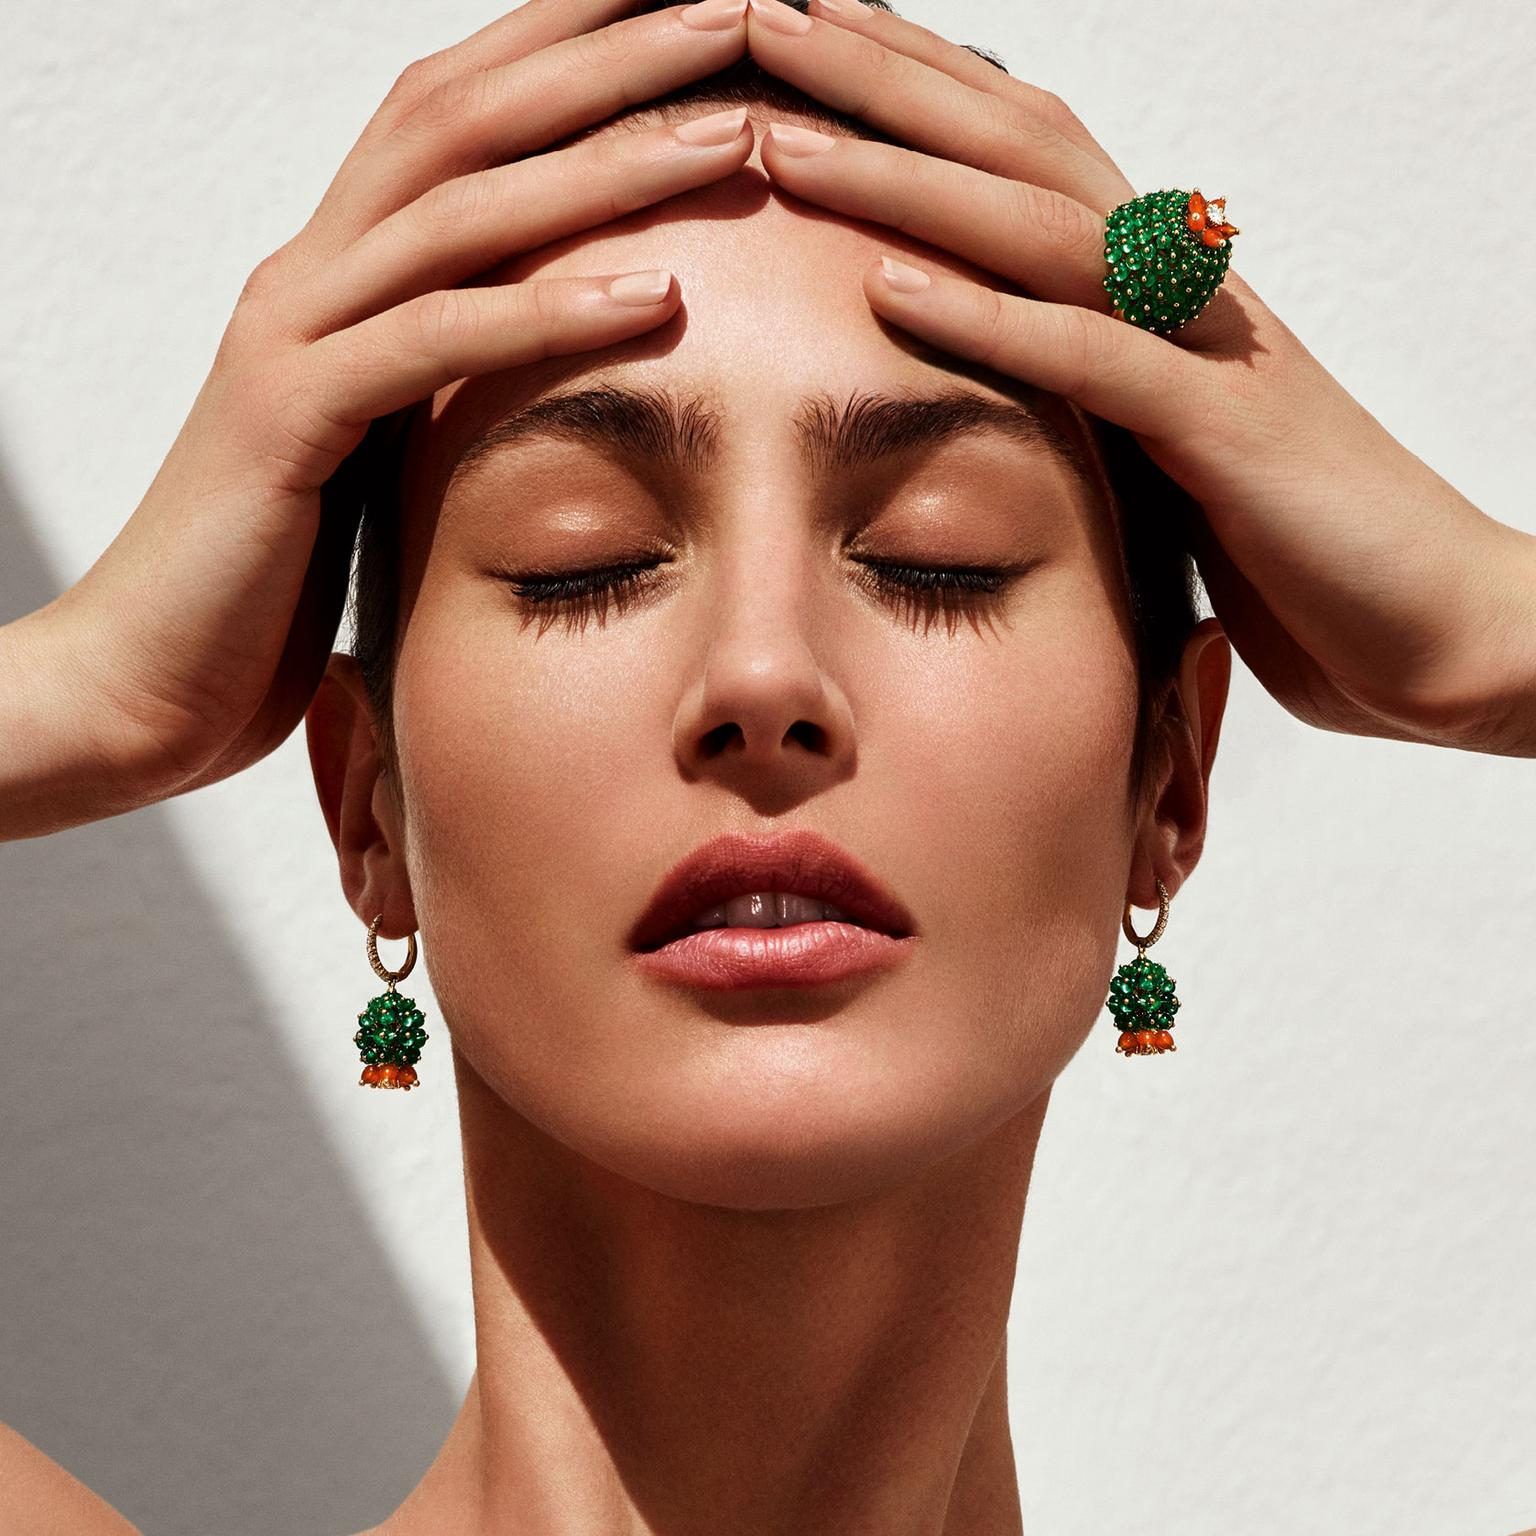 Cartier Cactus earrings and ring